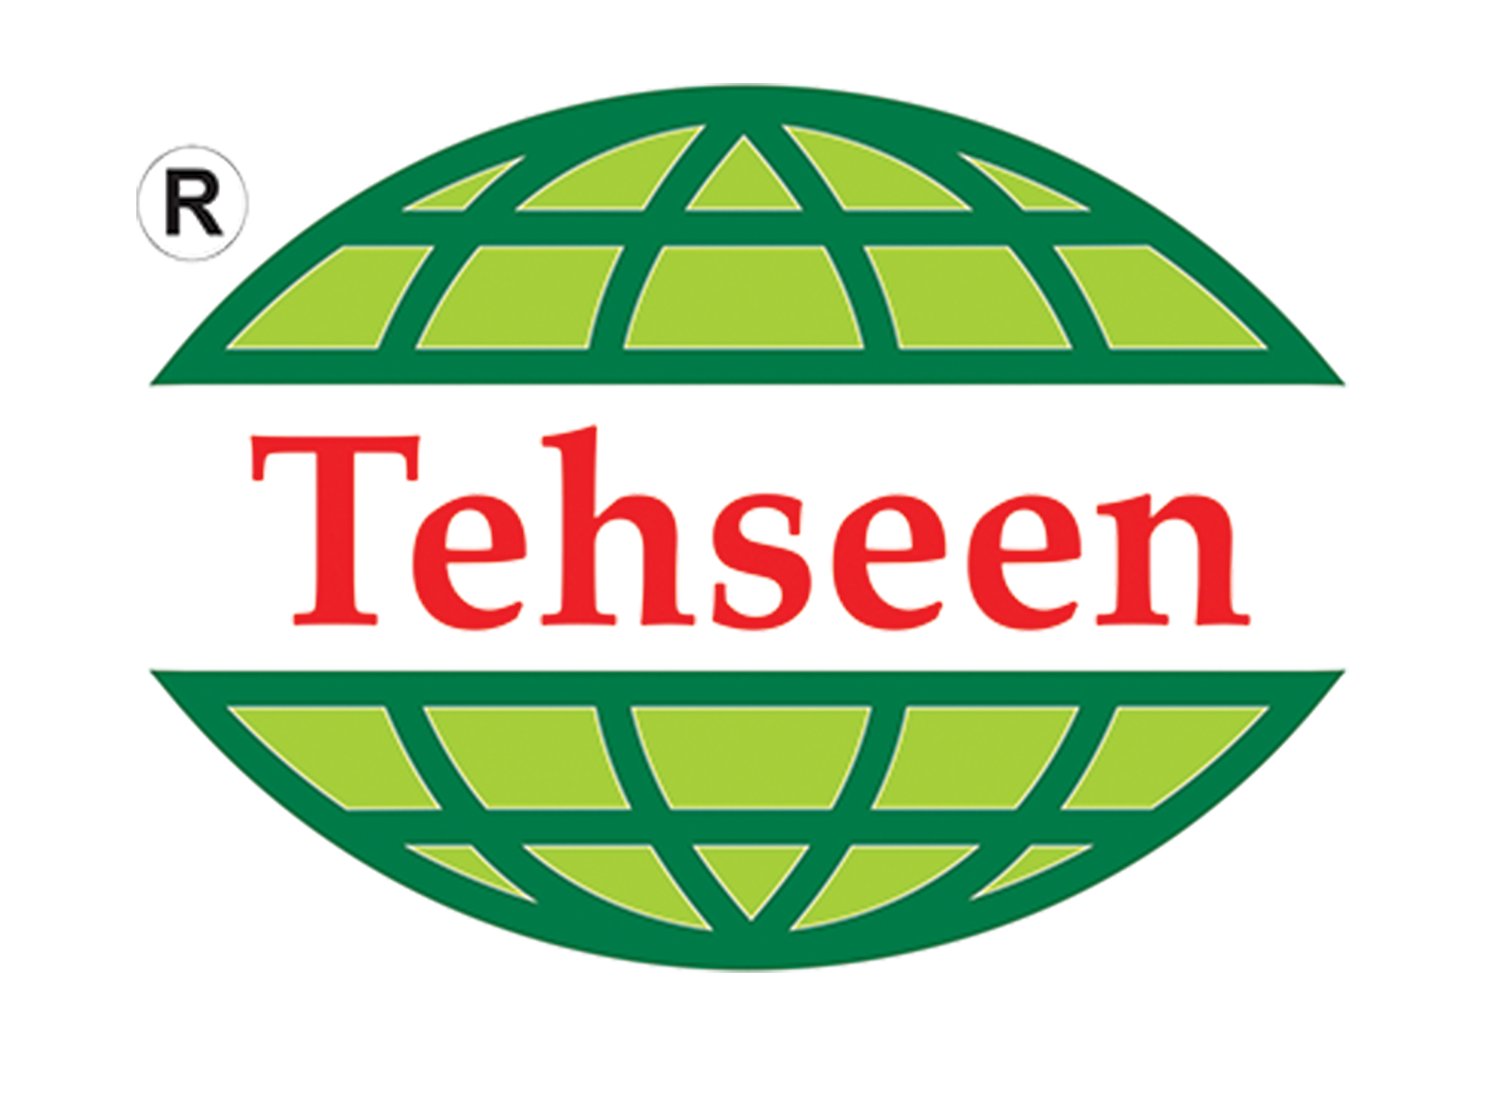 http://www.pakpositions.com/company/tehseen-industries